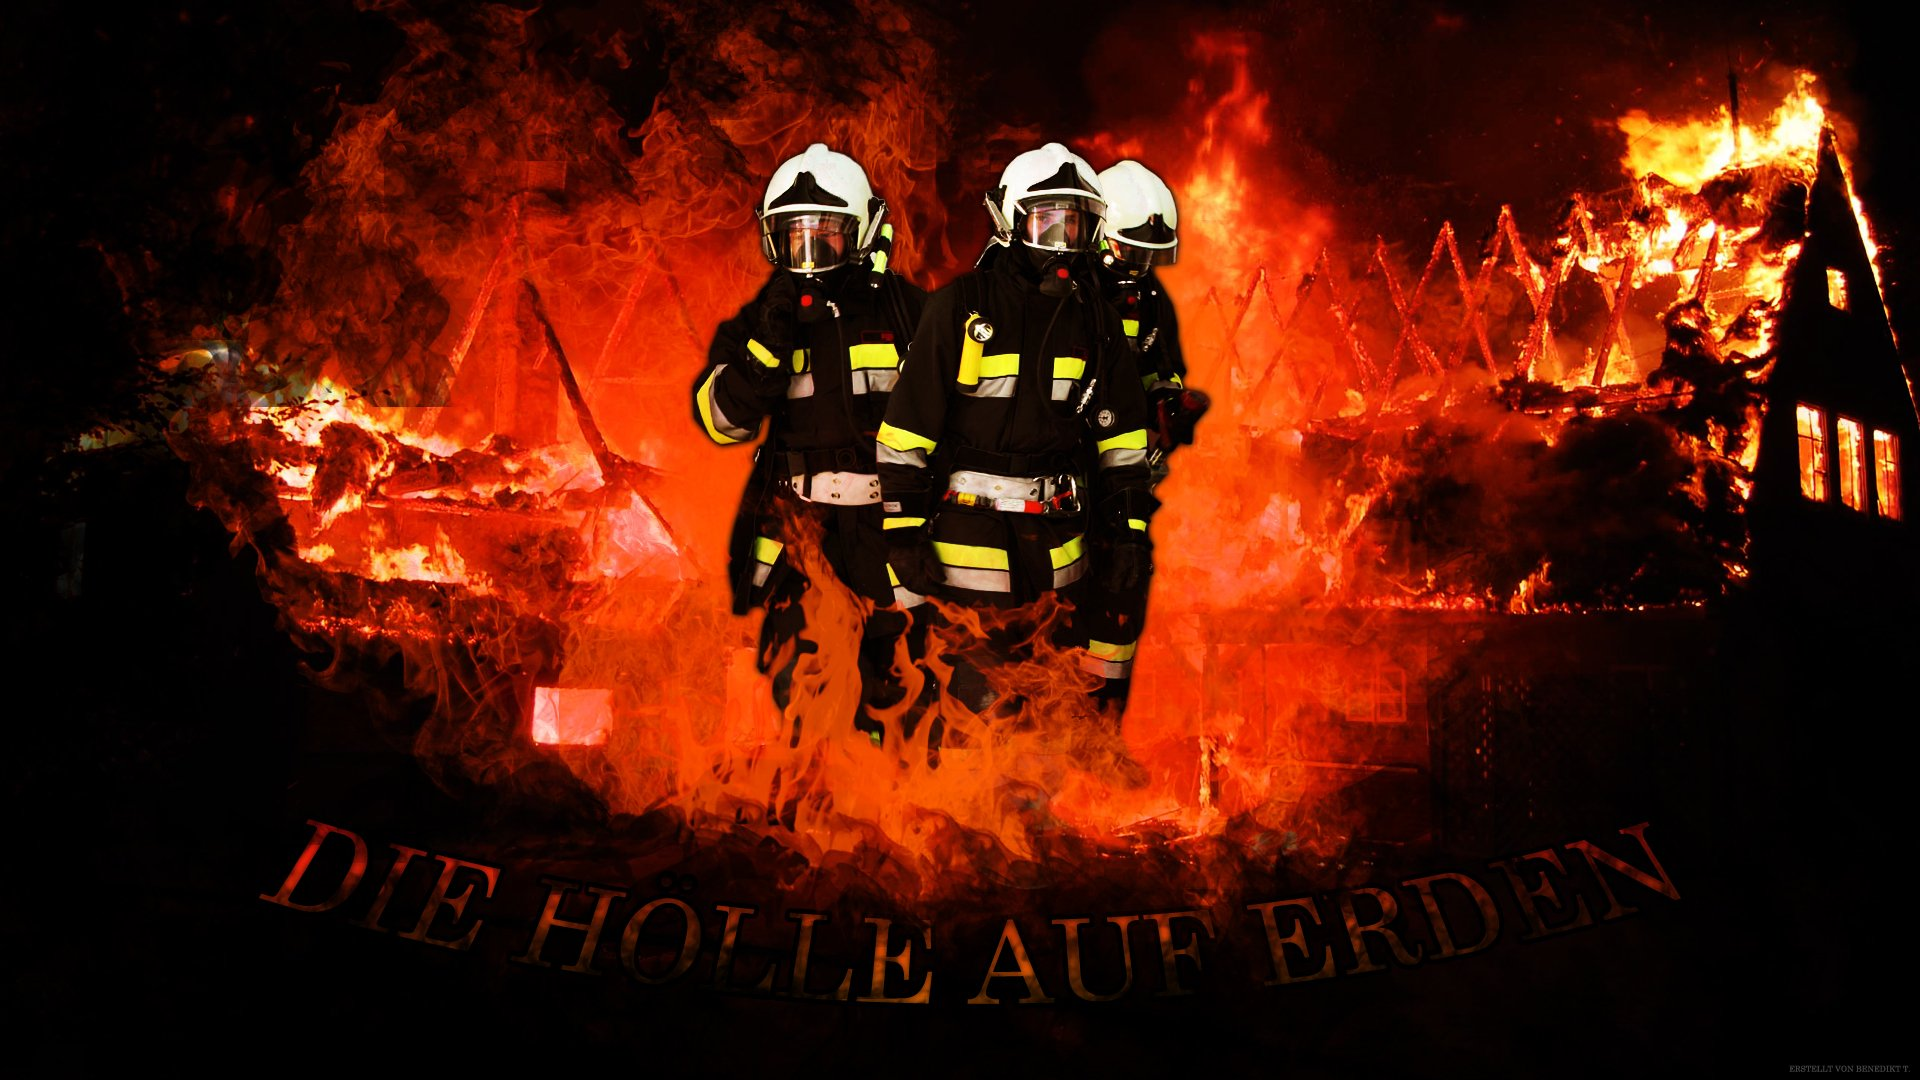 Firefighter Germany   Wallpaper Feuerwehr by DeNite93 1920x1080